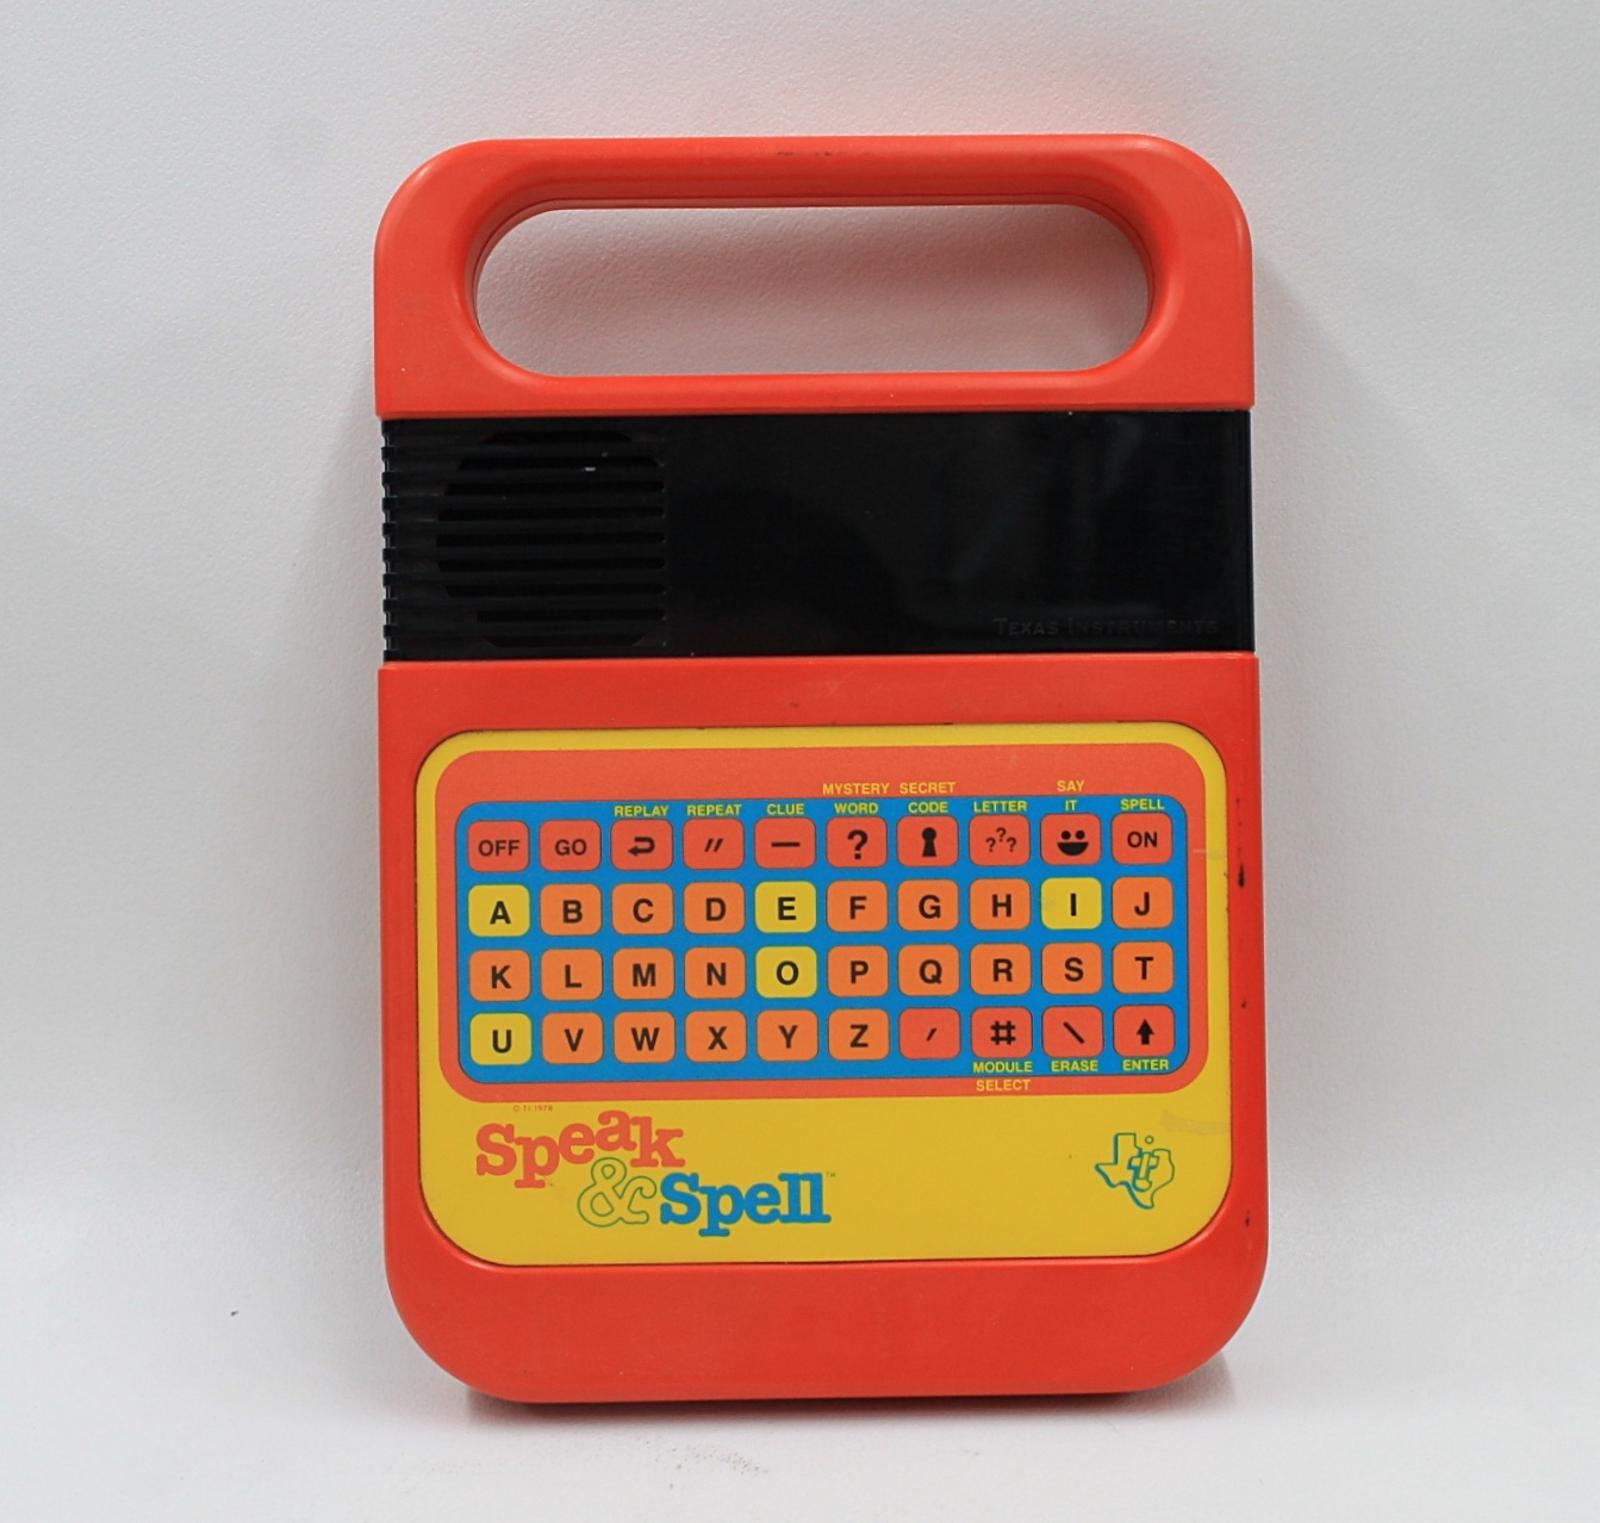 TEXAS-INSTRUMENTS-Speak-amp-Spell-Vintage-Electronic-Talking-Toy-Learning-Game